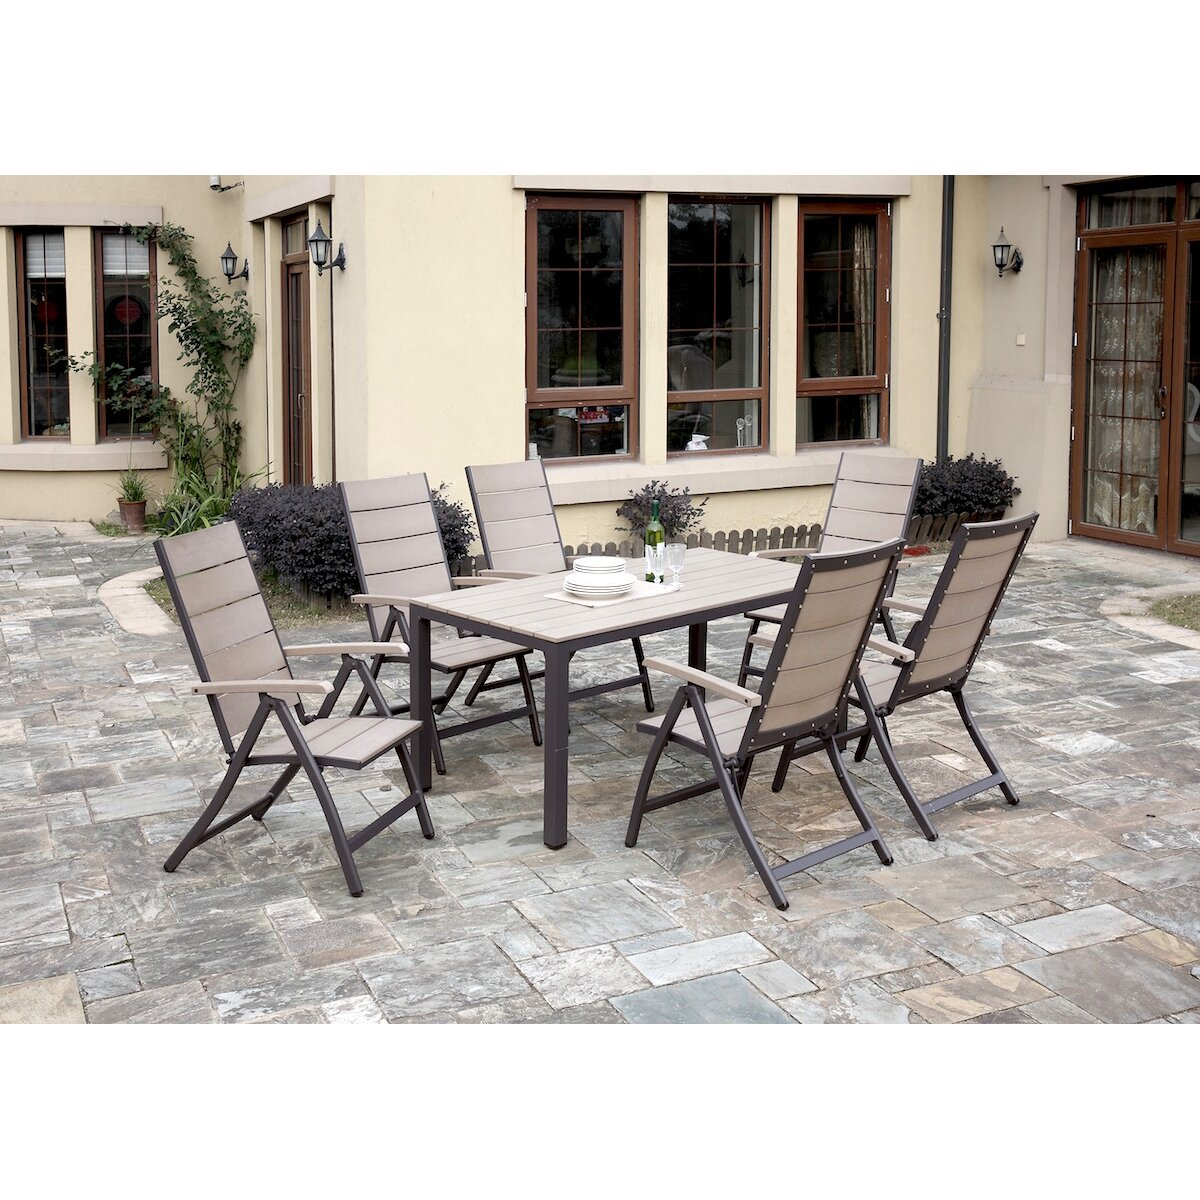 7 Piece Dining Set ~ Jb patio piece dining set wayfair